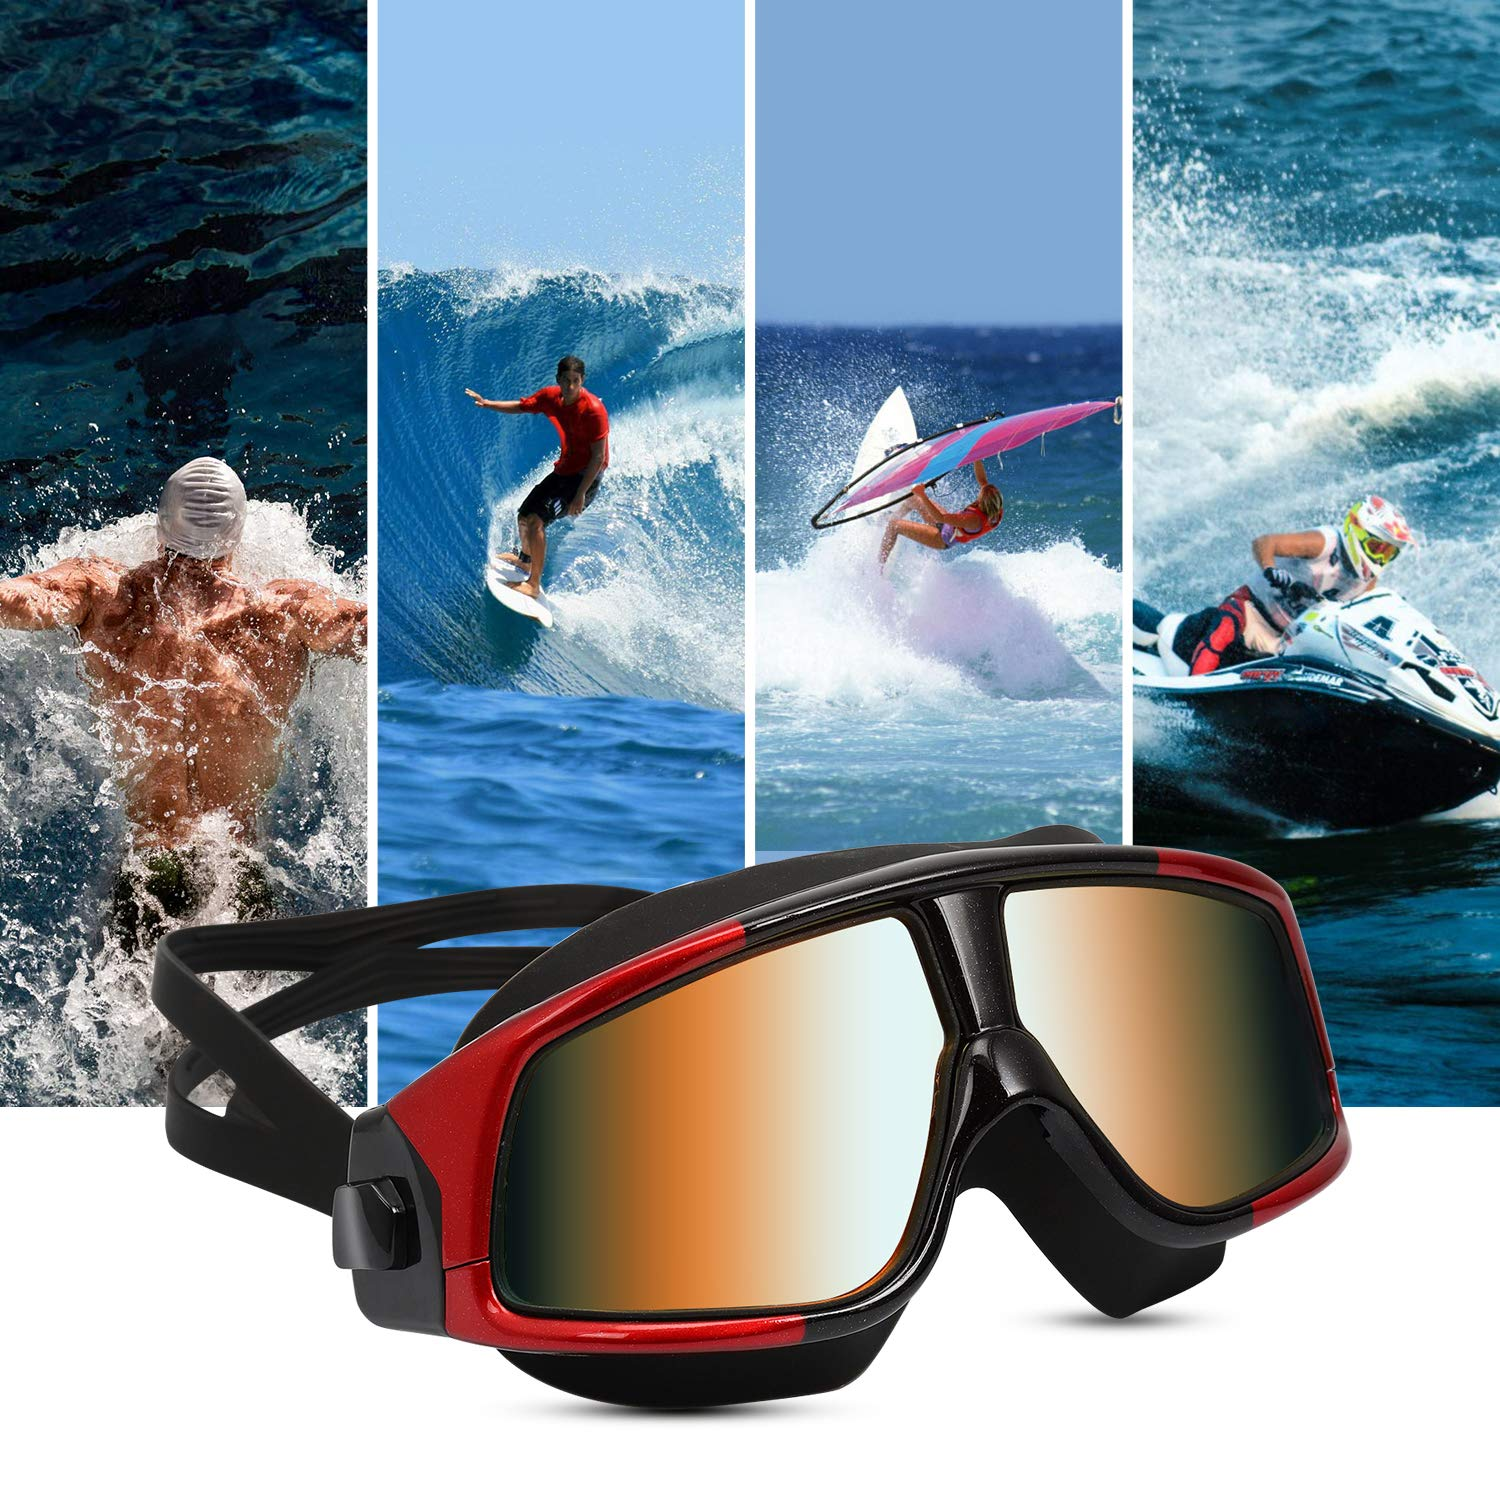 iOutdoor Products Swim Goggles Anti Fog Leakproof Large Frame,Swimming Glass UV Protection with Wide Vision And Soft Silicone Nose Bridge for Adult Youth Women Men (Black&Red)